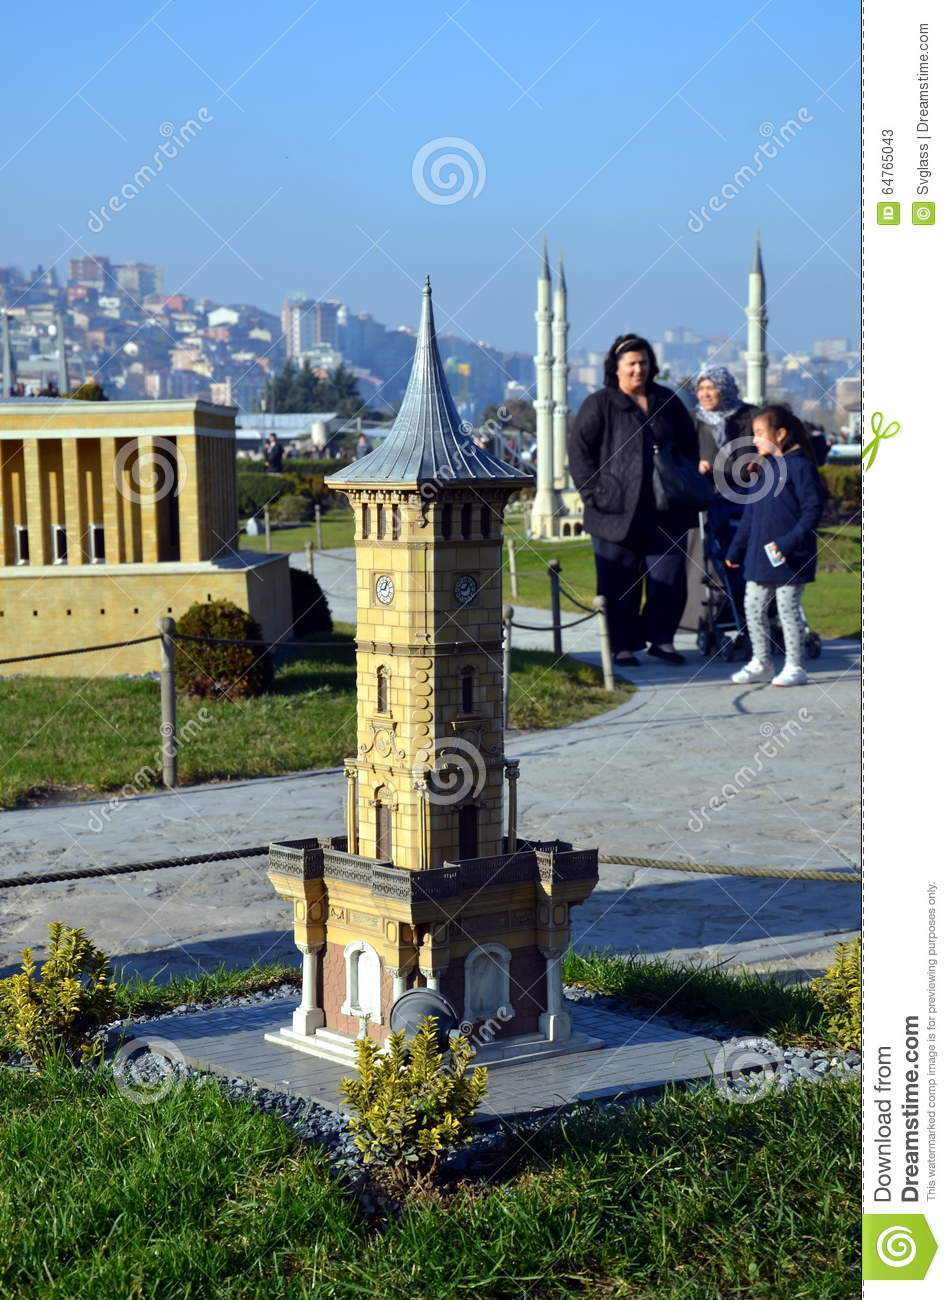 Scale Model Of Clock Tower In Izmit City Editorial Stock Photo.